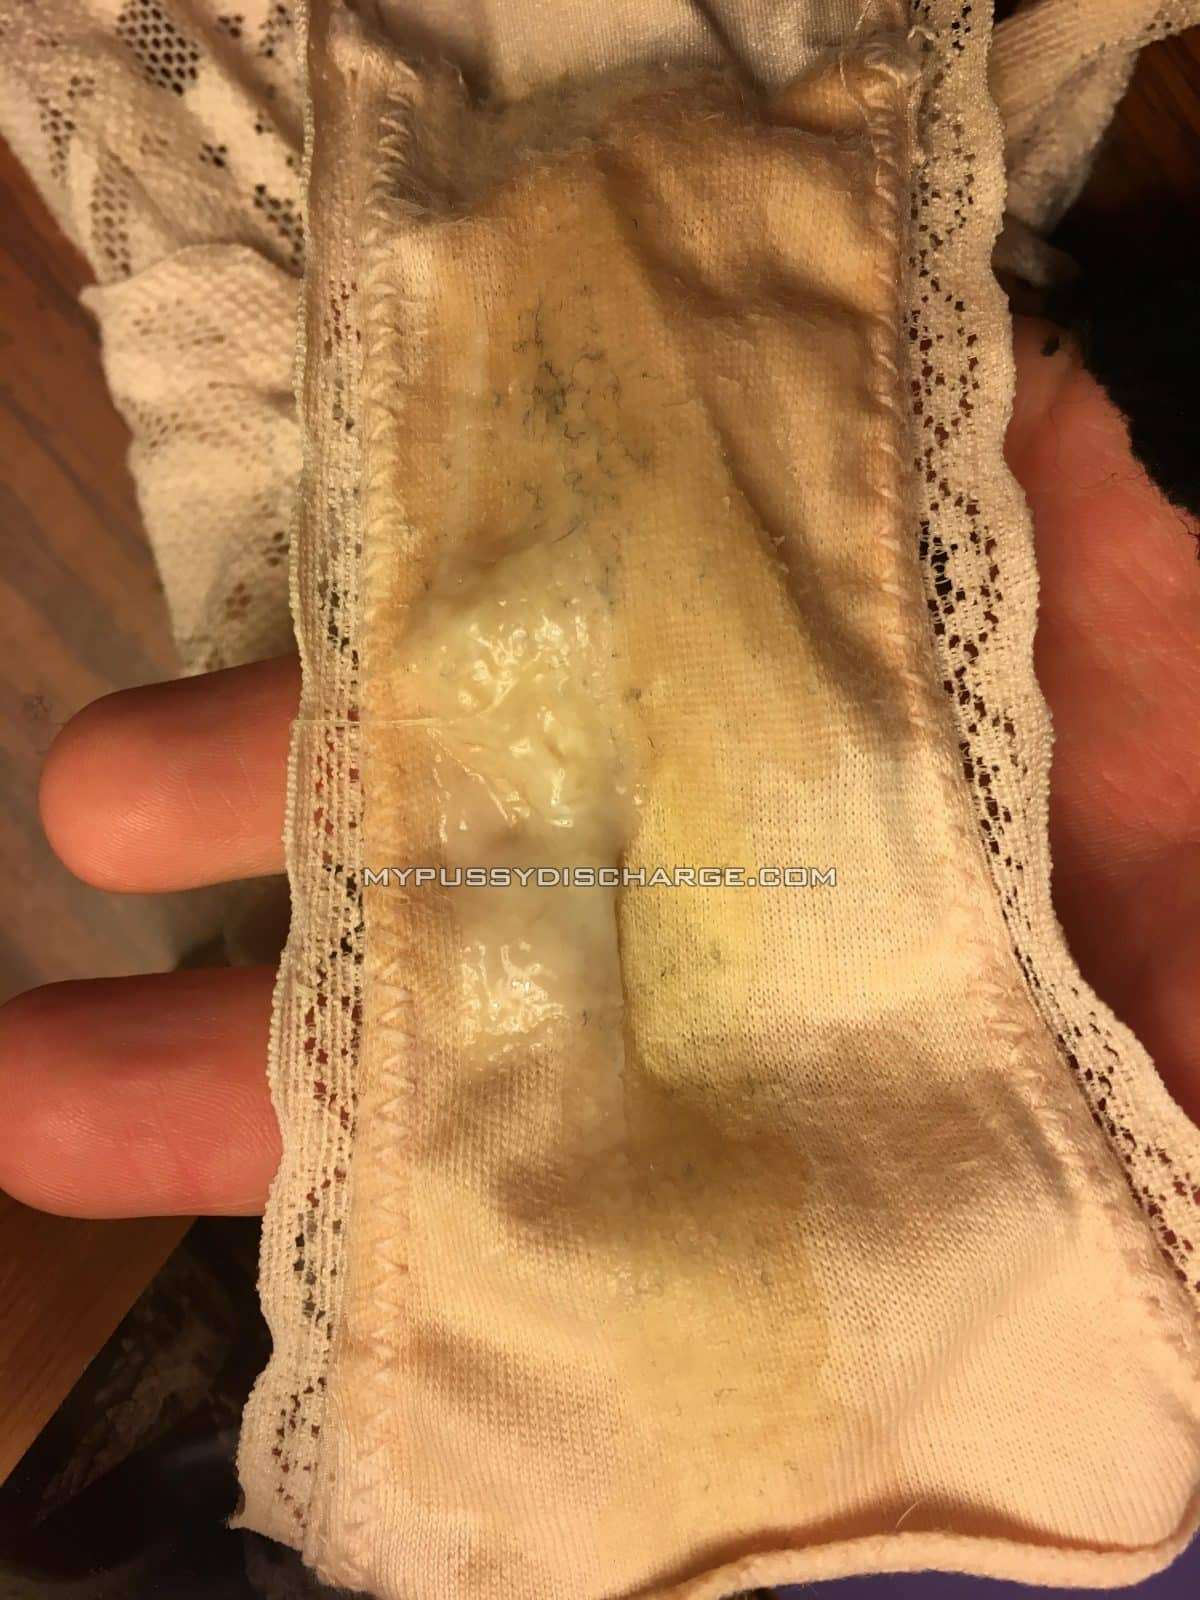 Dirty panties worn 4 days with pussy discharge on them